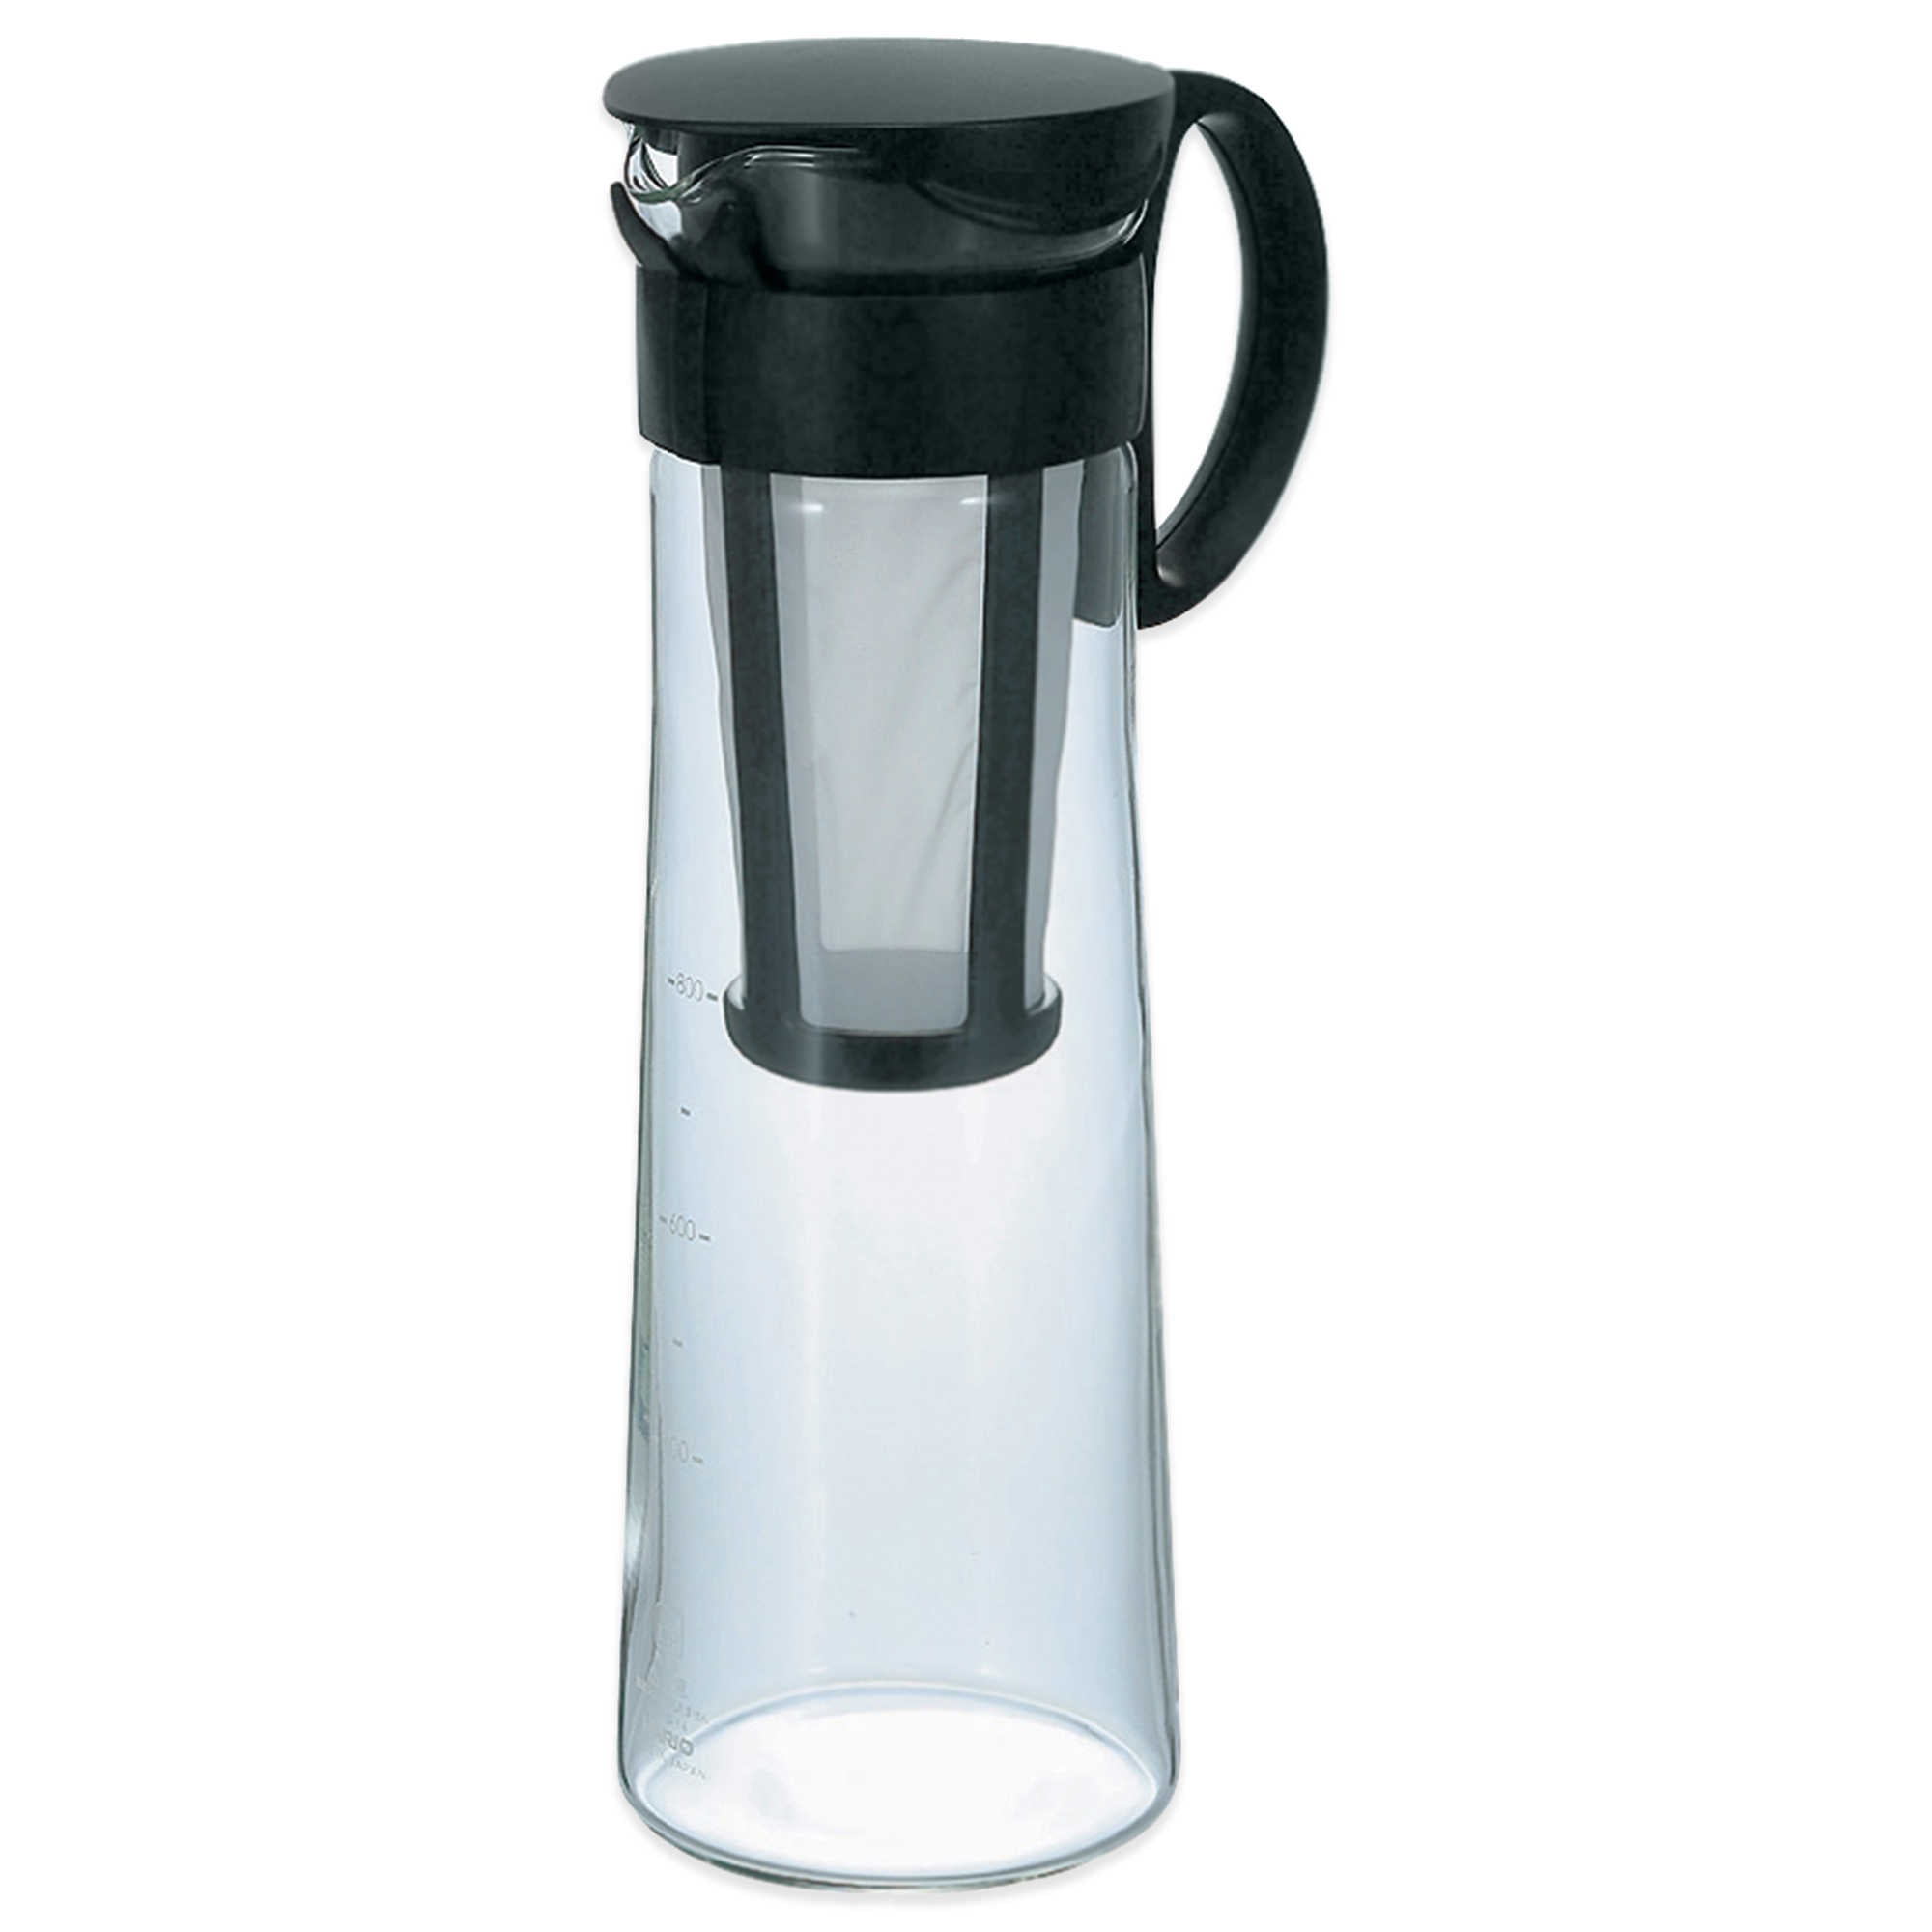 Hario Mizudashi Cold Brew Iced Coffee Pot / Maker (1,000 ml, Black) - Nomad Coffee Club